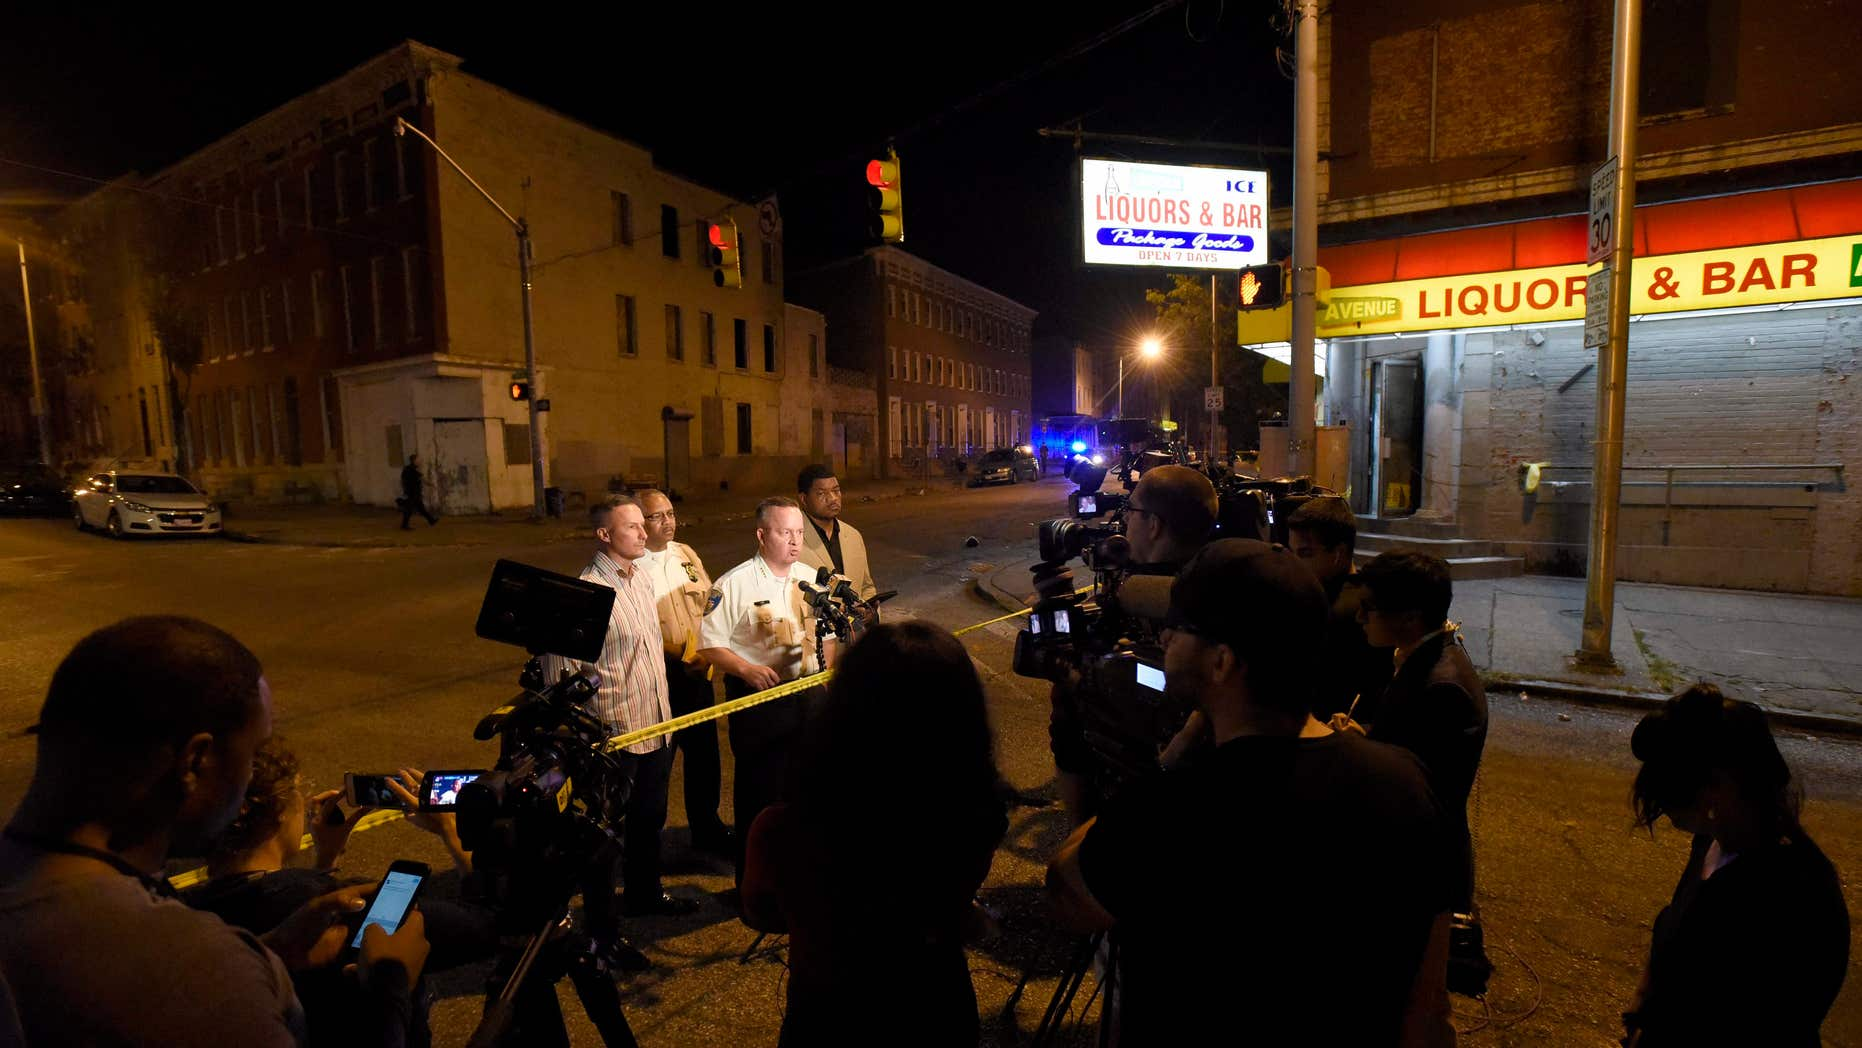 Sept. 24, 2016: Baltimore police, from left, Deputy Commissioner Dean Palmere, Stanley Brandford, chief of detectives, Commissioner Kevin Davis and T.J. Smith, police spokesman, speak to reporters at a scene where multiple people were shot and wounded in Baltimore.